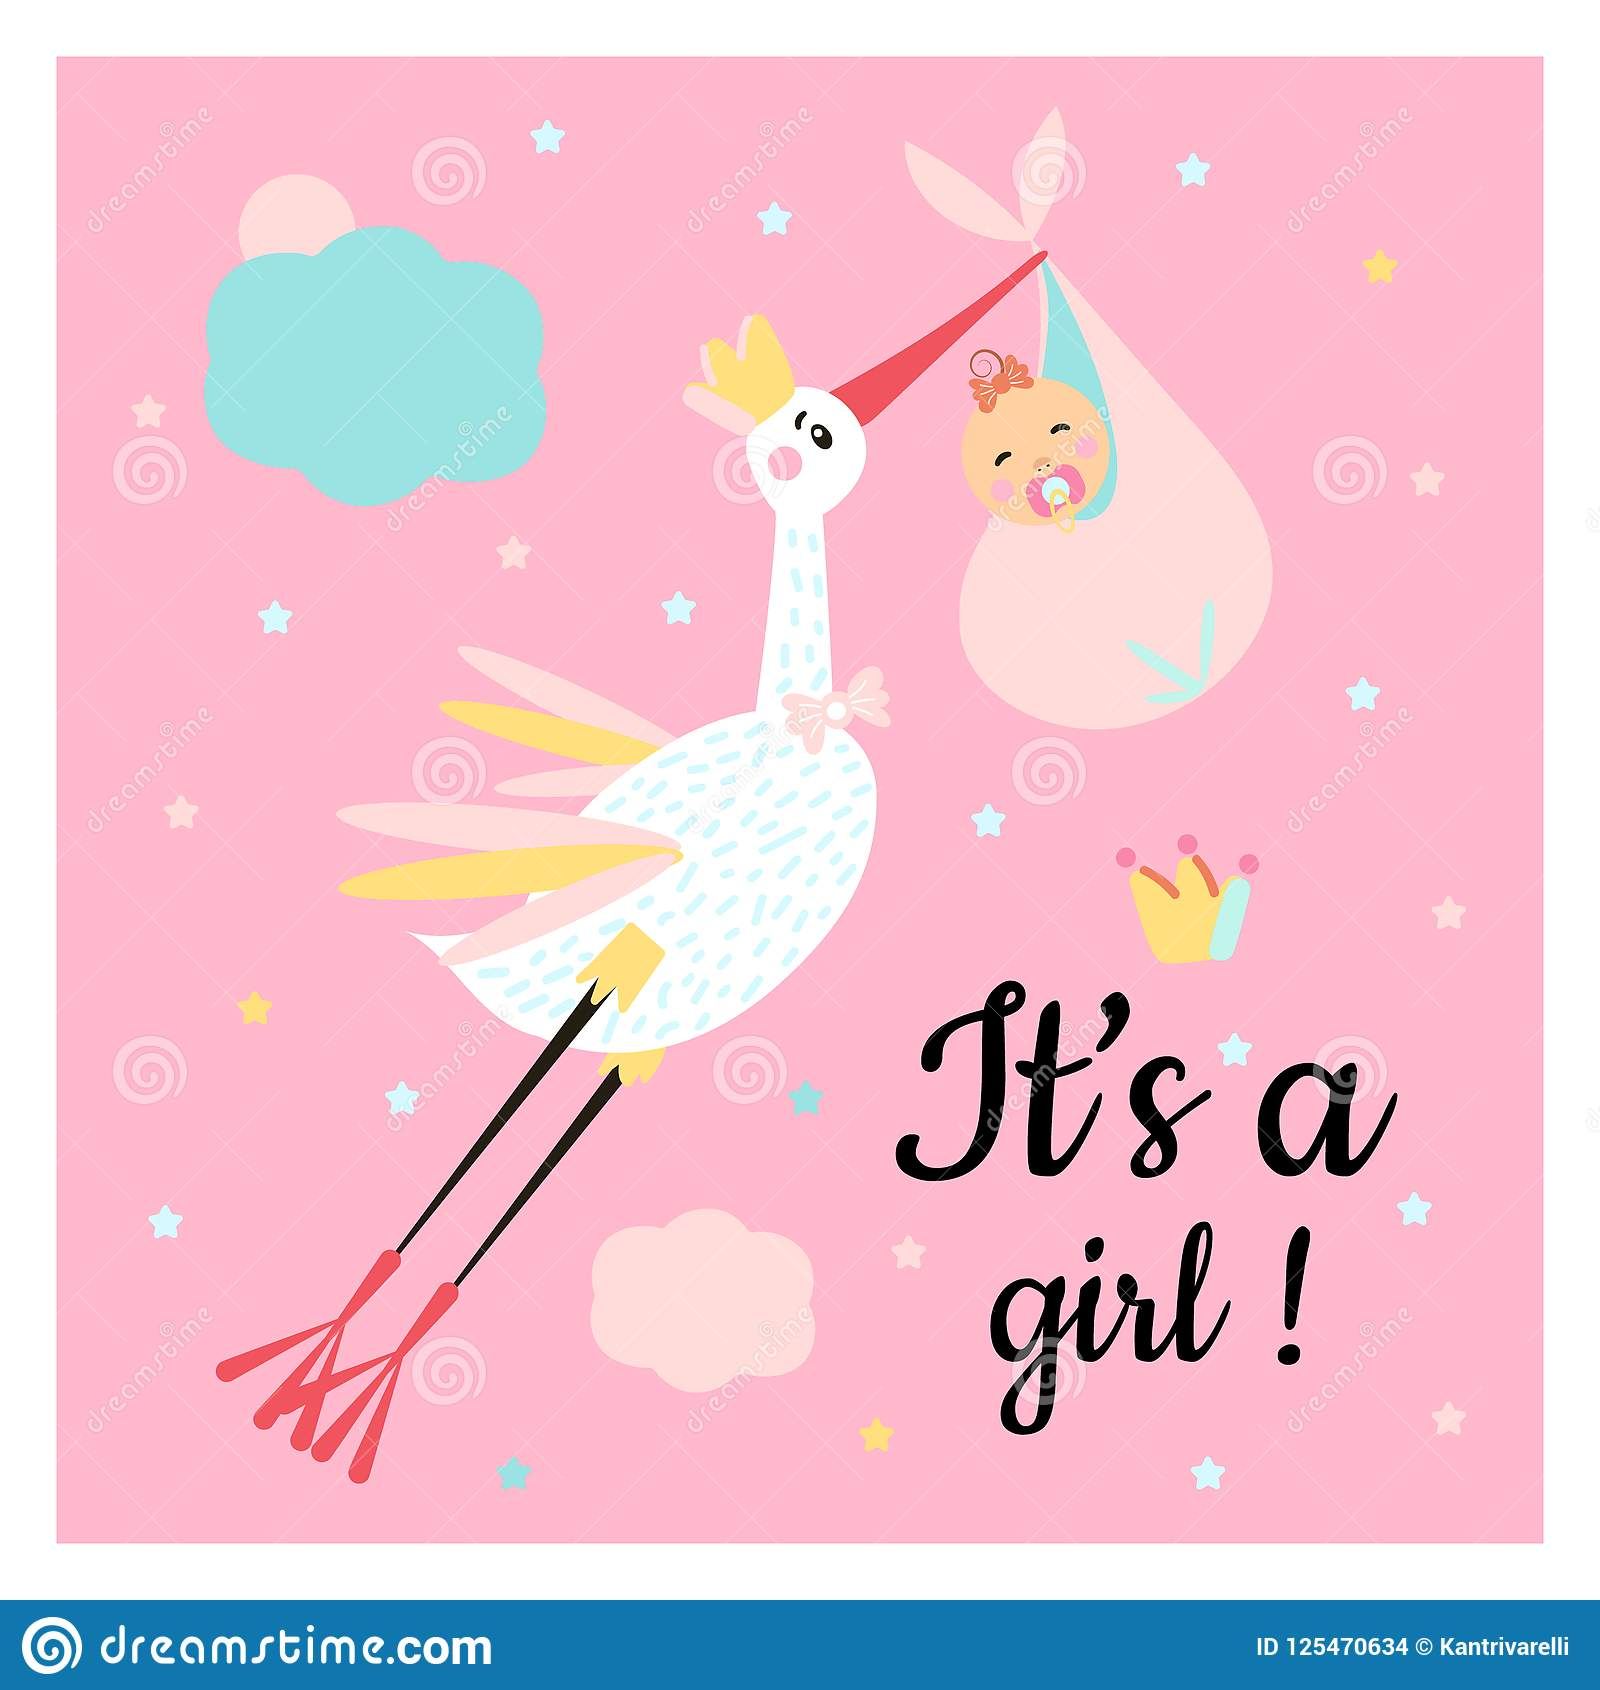 Cute funny stork and girl with different childish elements.